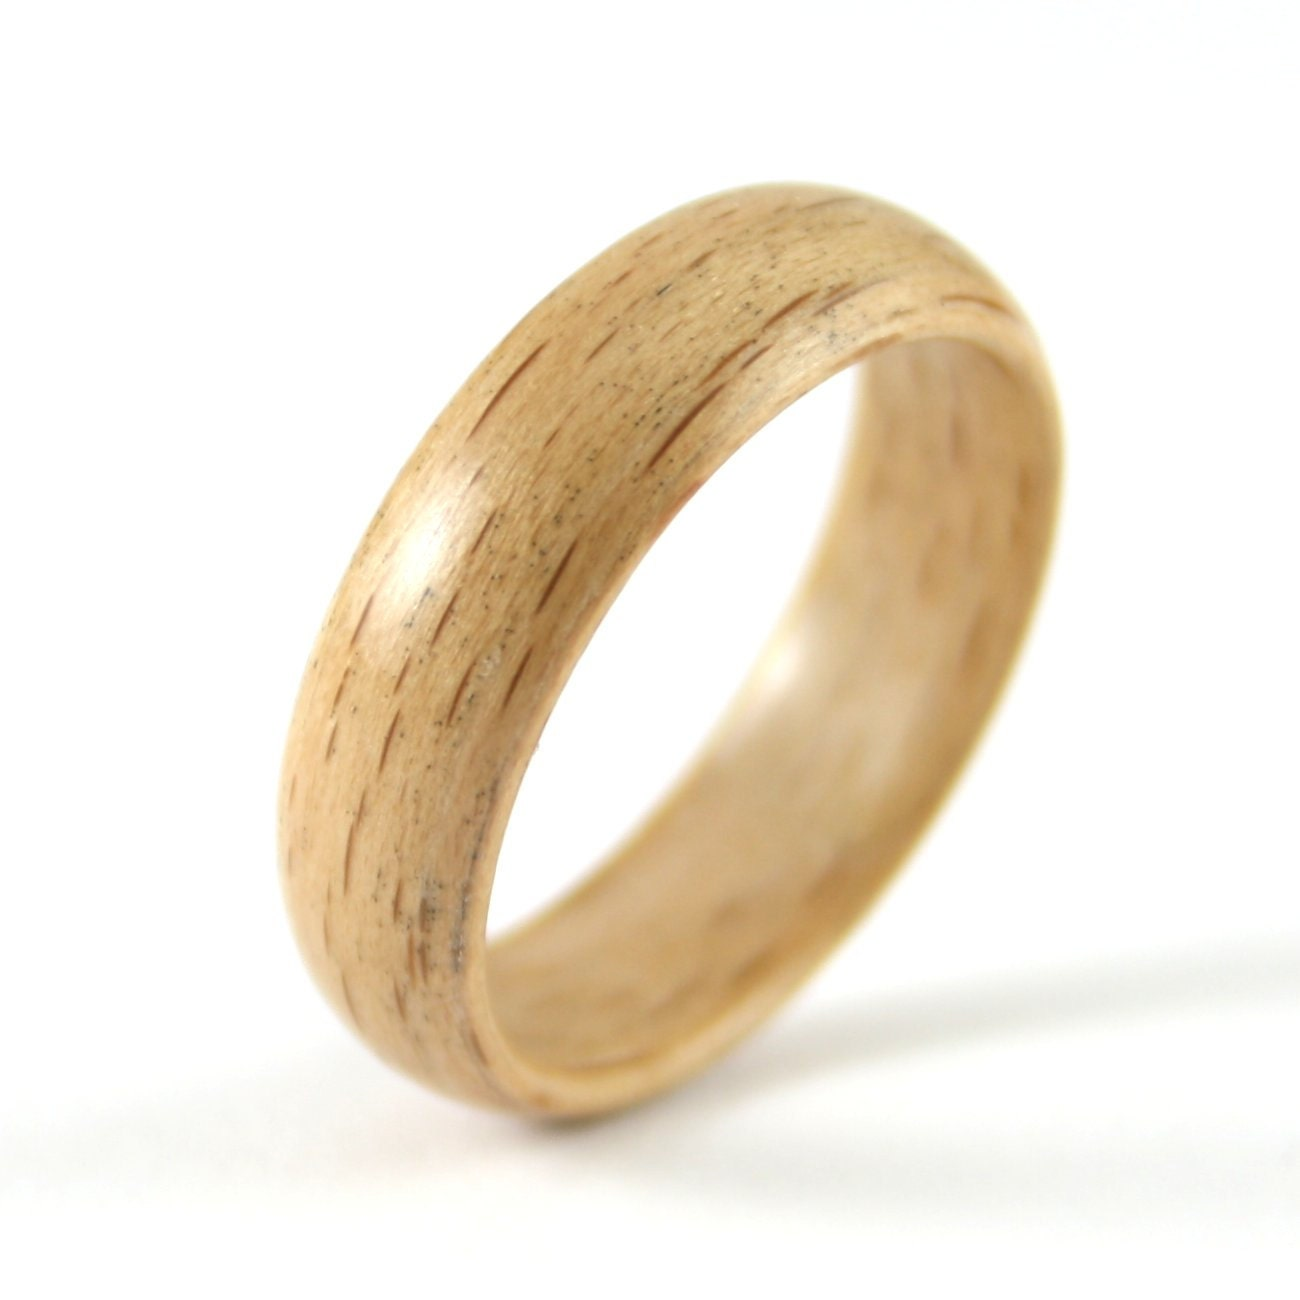 Bentwood ring wooden ring made from beech for How to make a wooden ring